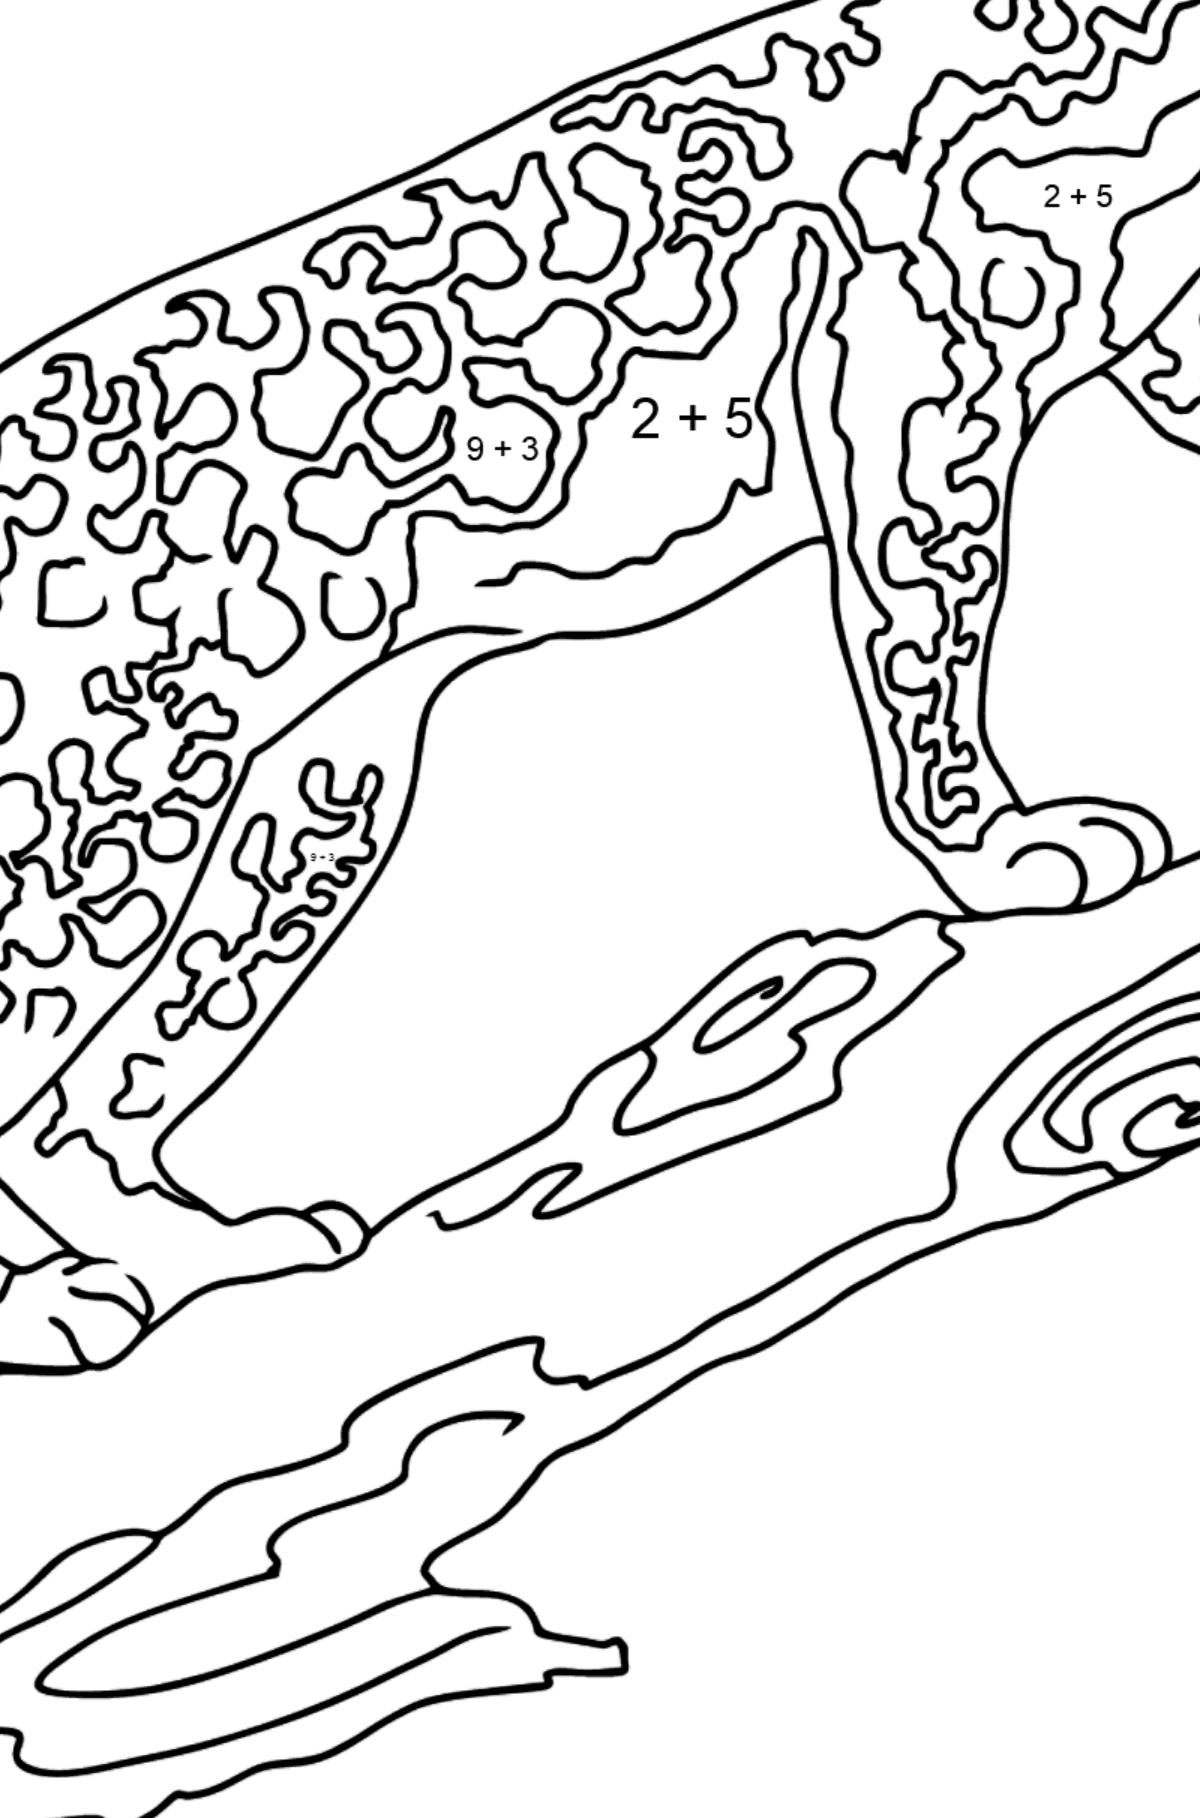 Coloring Page - A Leopard is Getting Ready for a Jump - Math Coloring - Addition for Kids